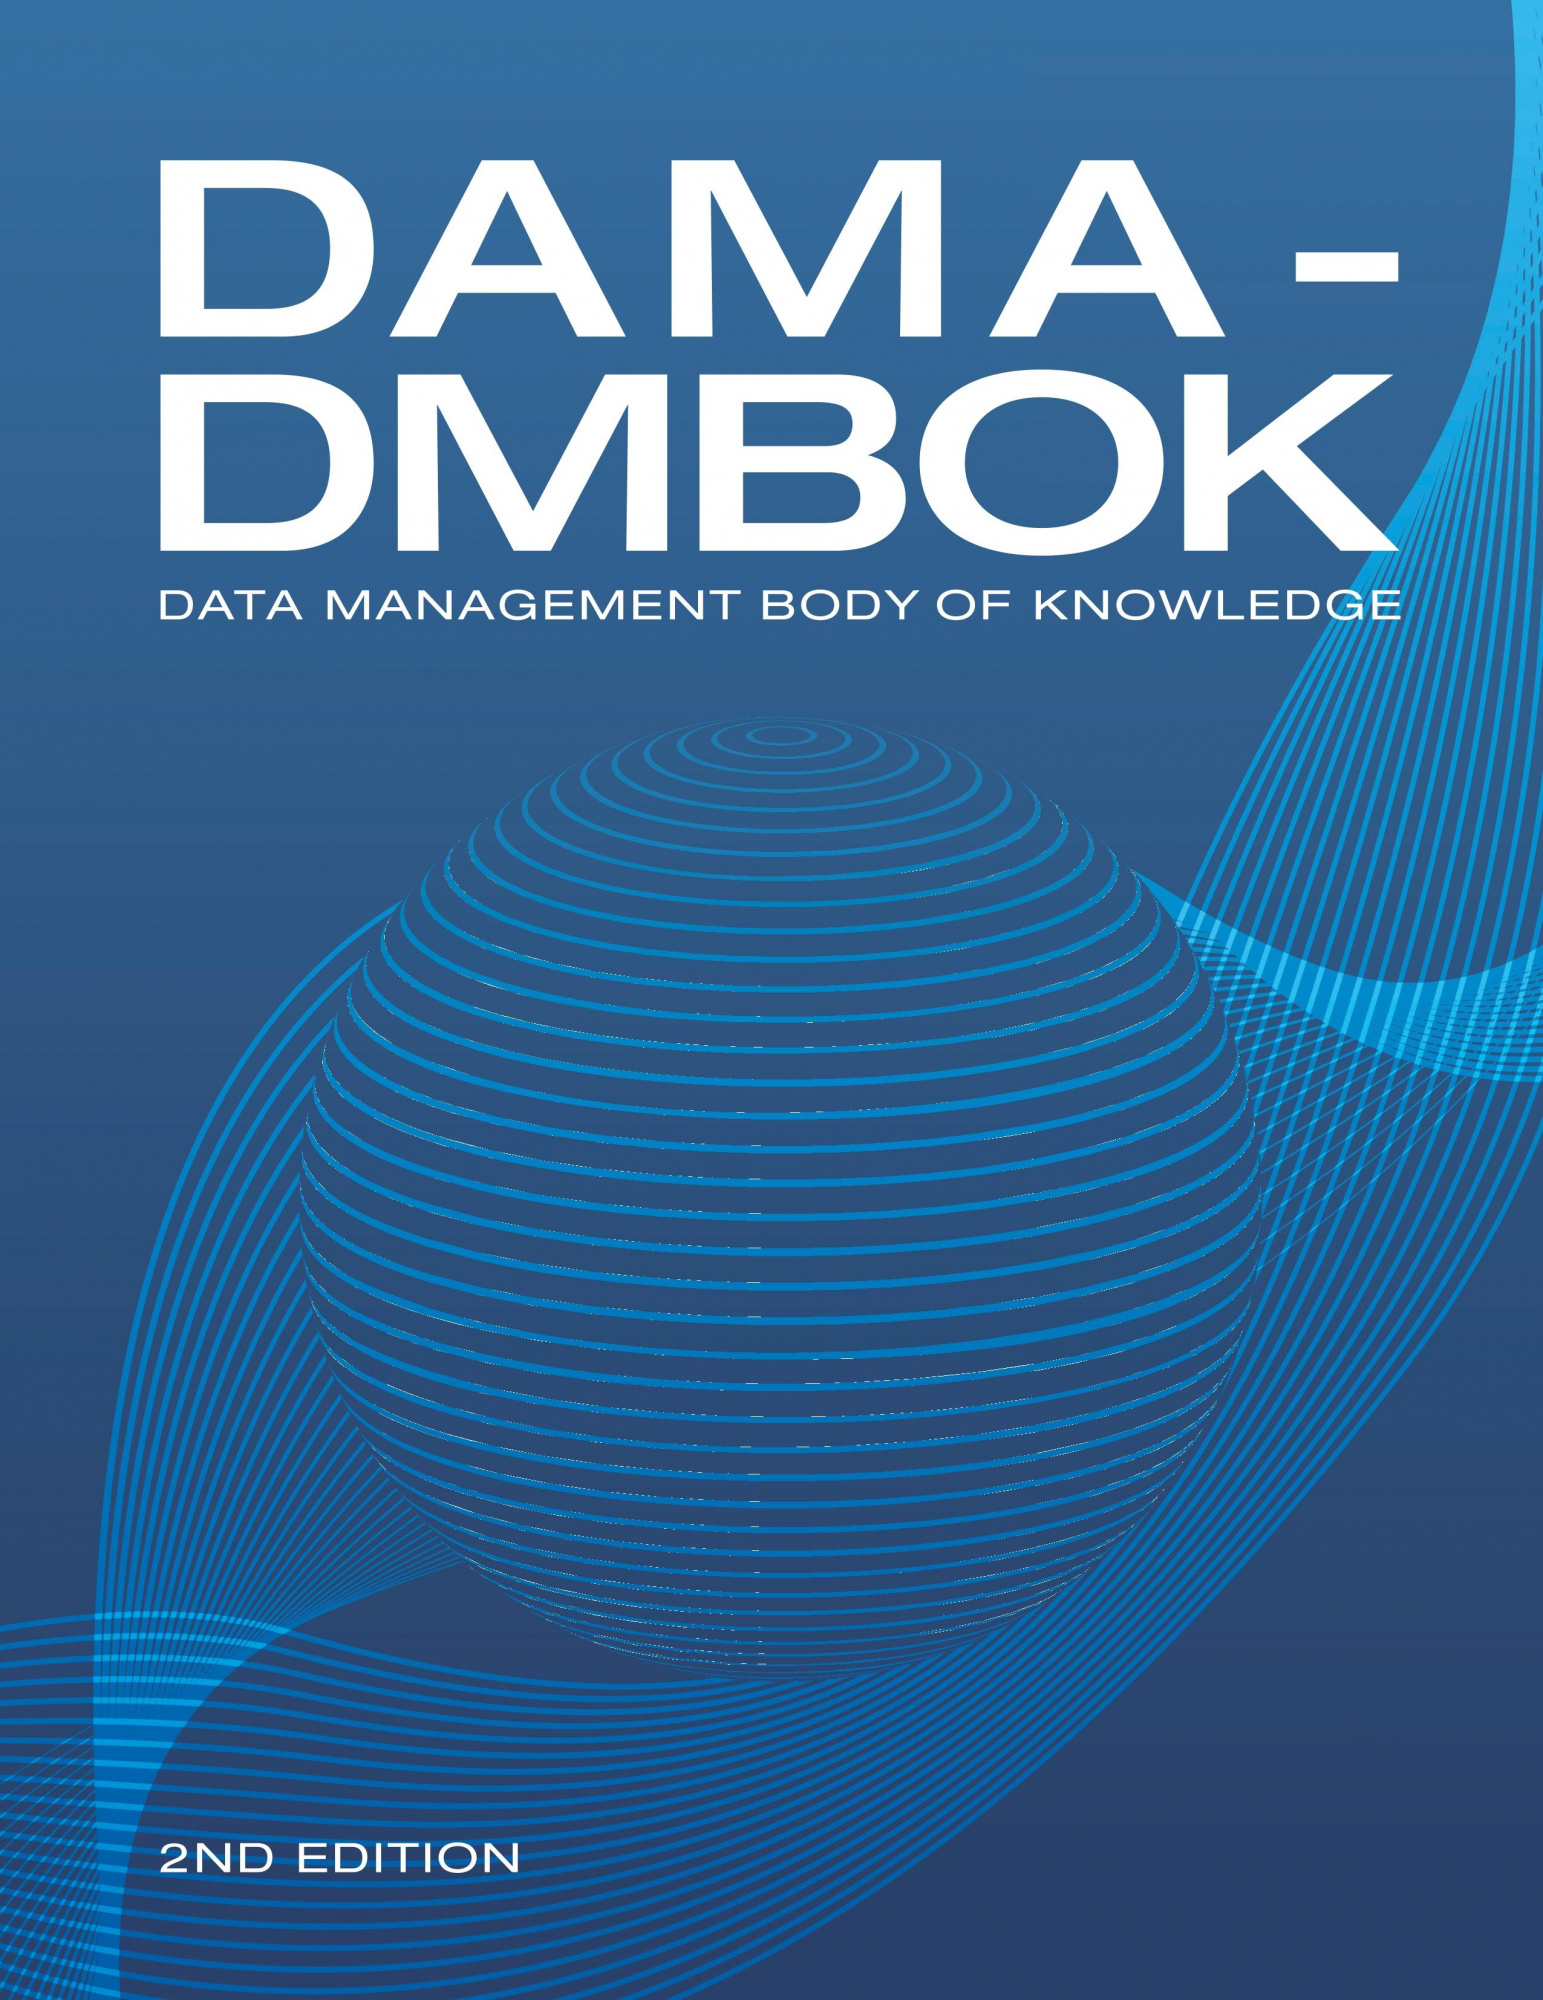 DAMA-DMBOK: Data Management Body of Knowledge (2nd Edition) by DAMA International, ISBN: 9781634622349